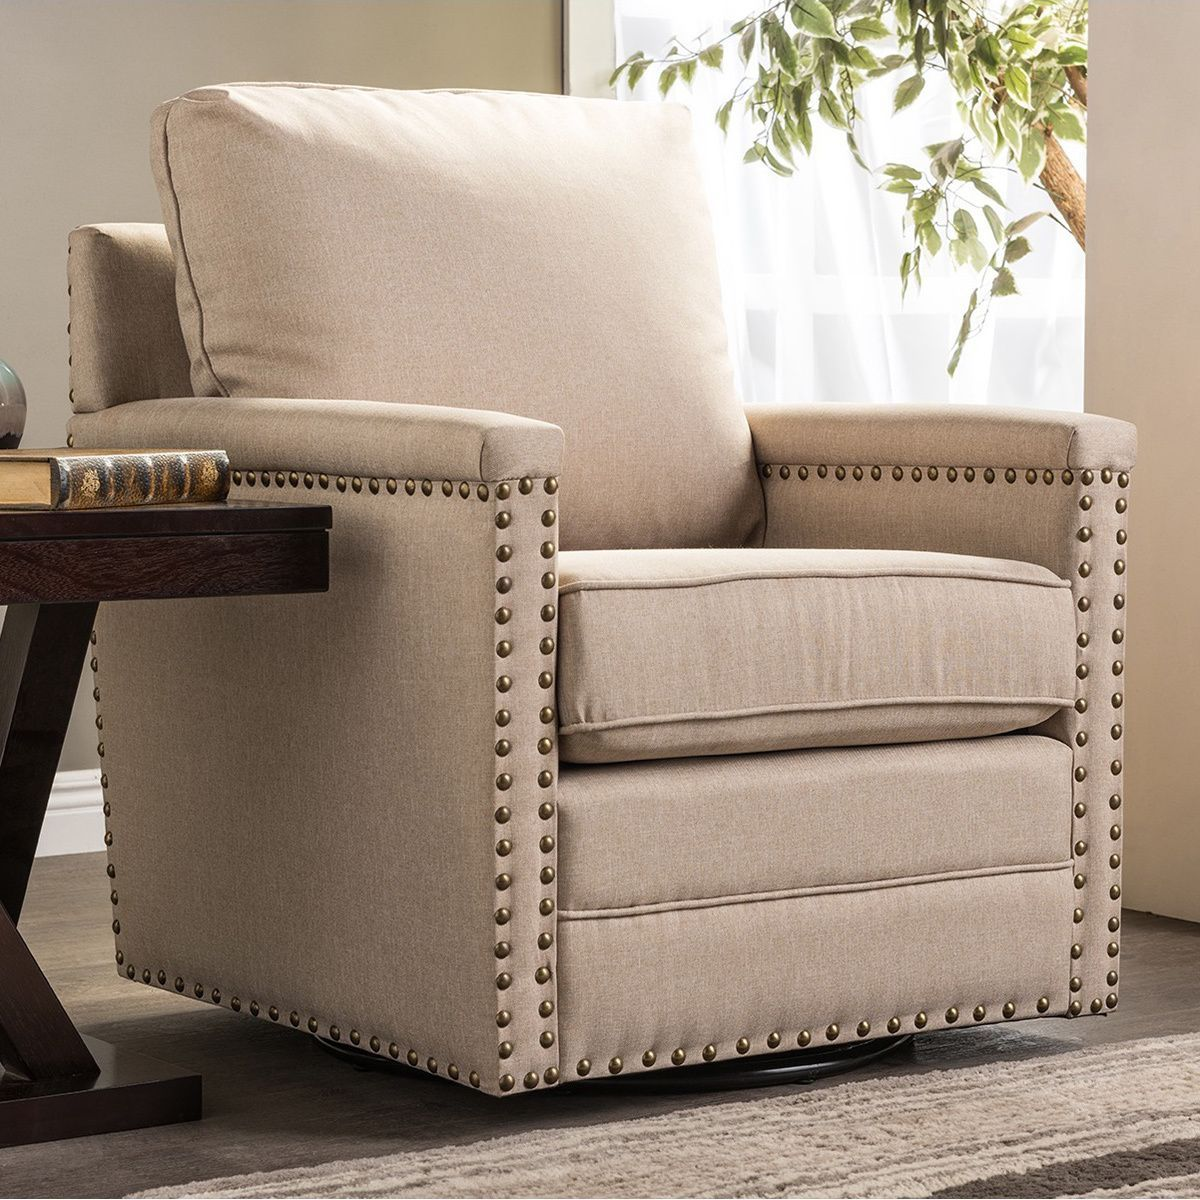 Best Baxton Studio Ashley Contemporary Beige Fabric Upholstered 400 x 300